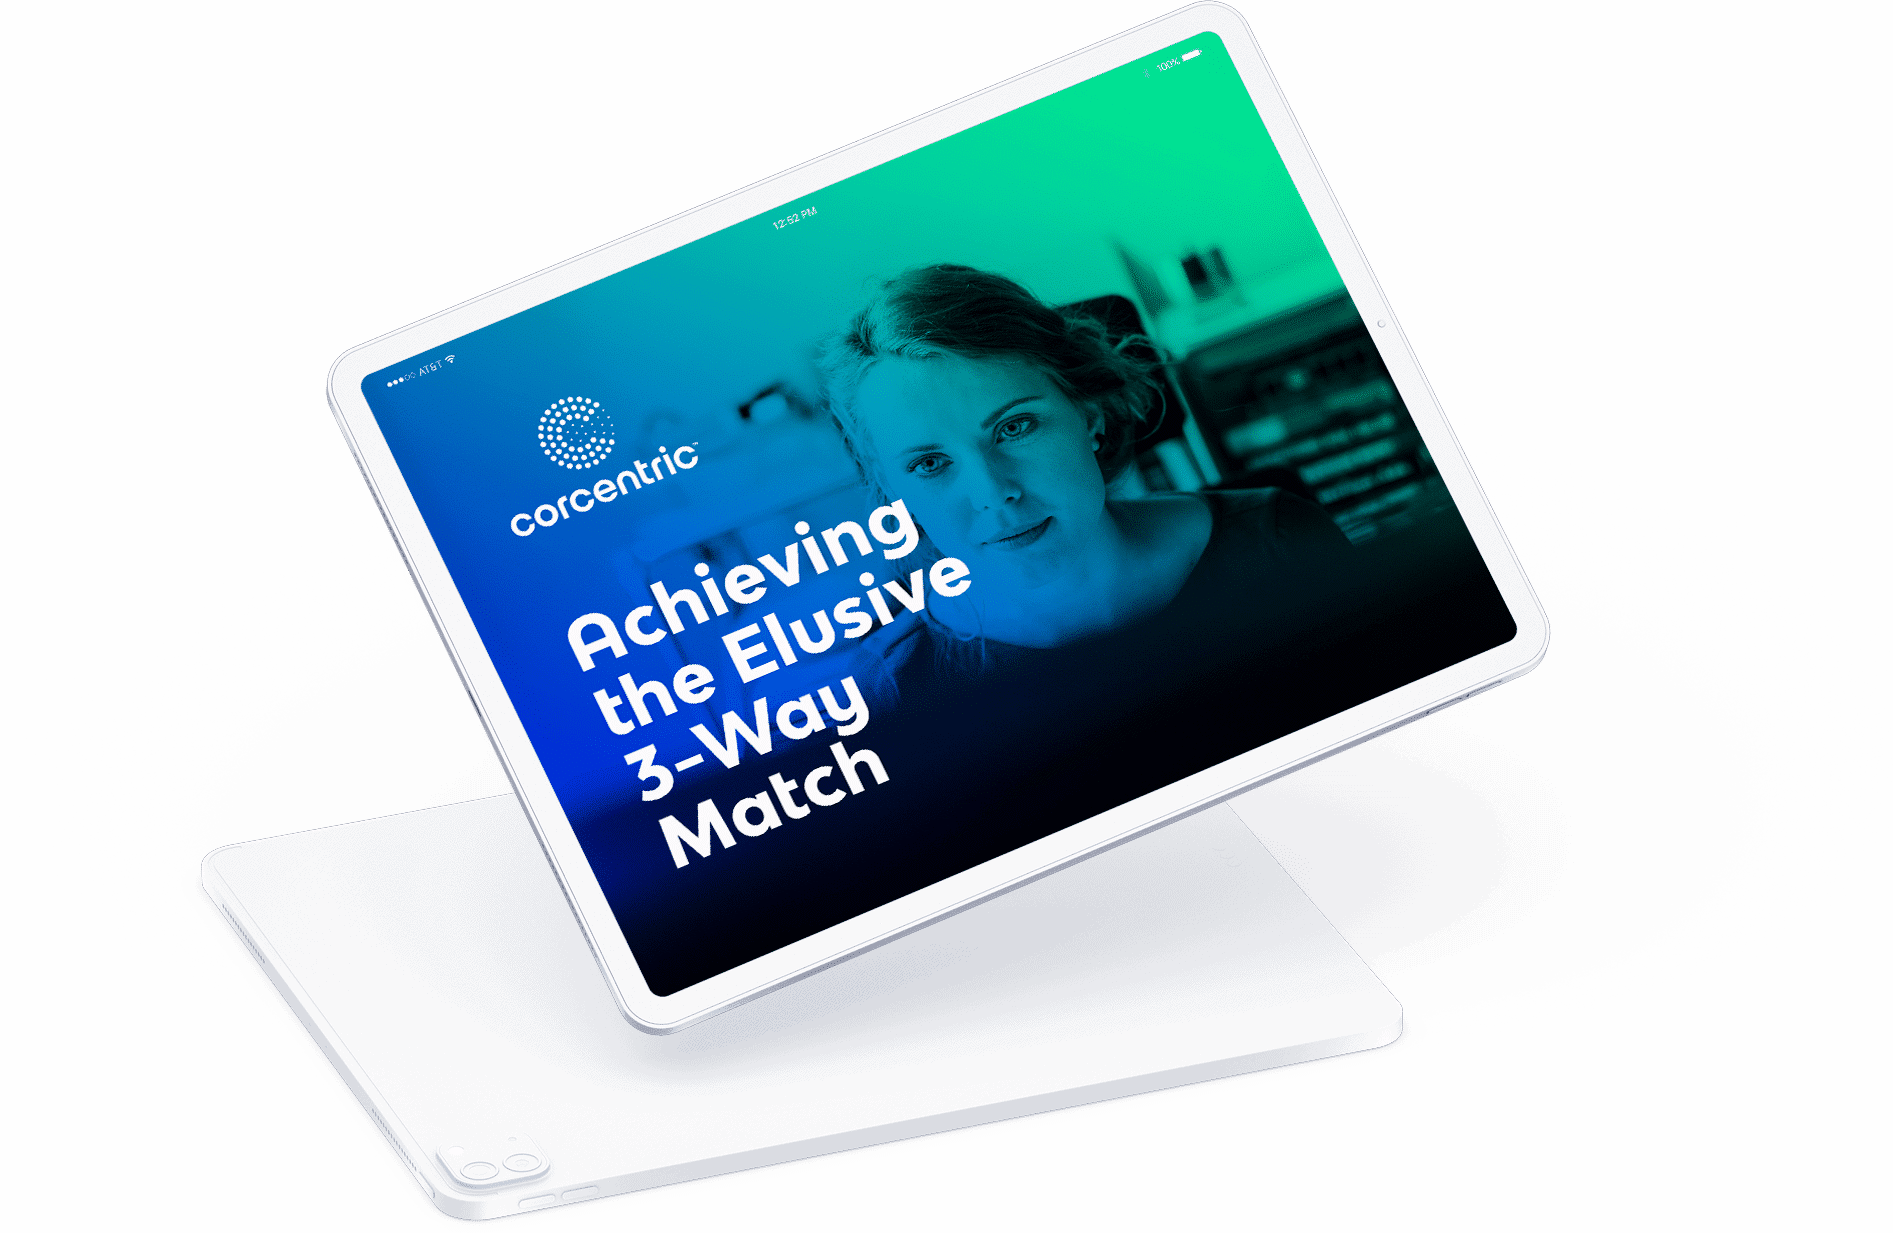 webinar-achieving-elusive-3-way-match-asset